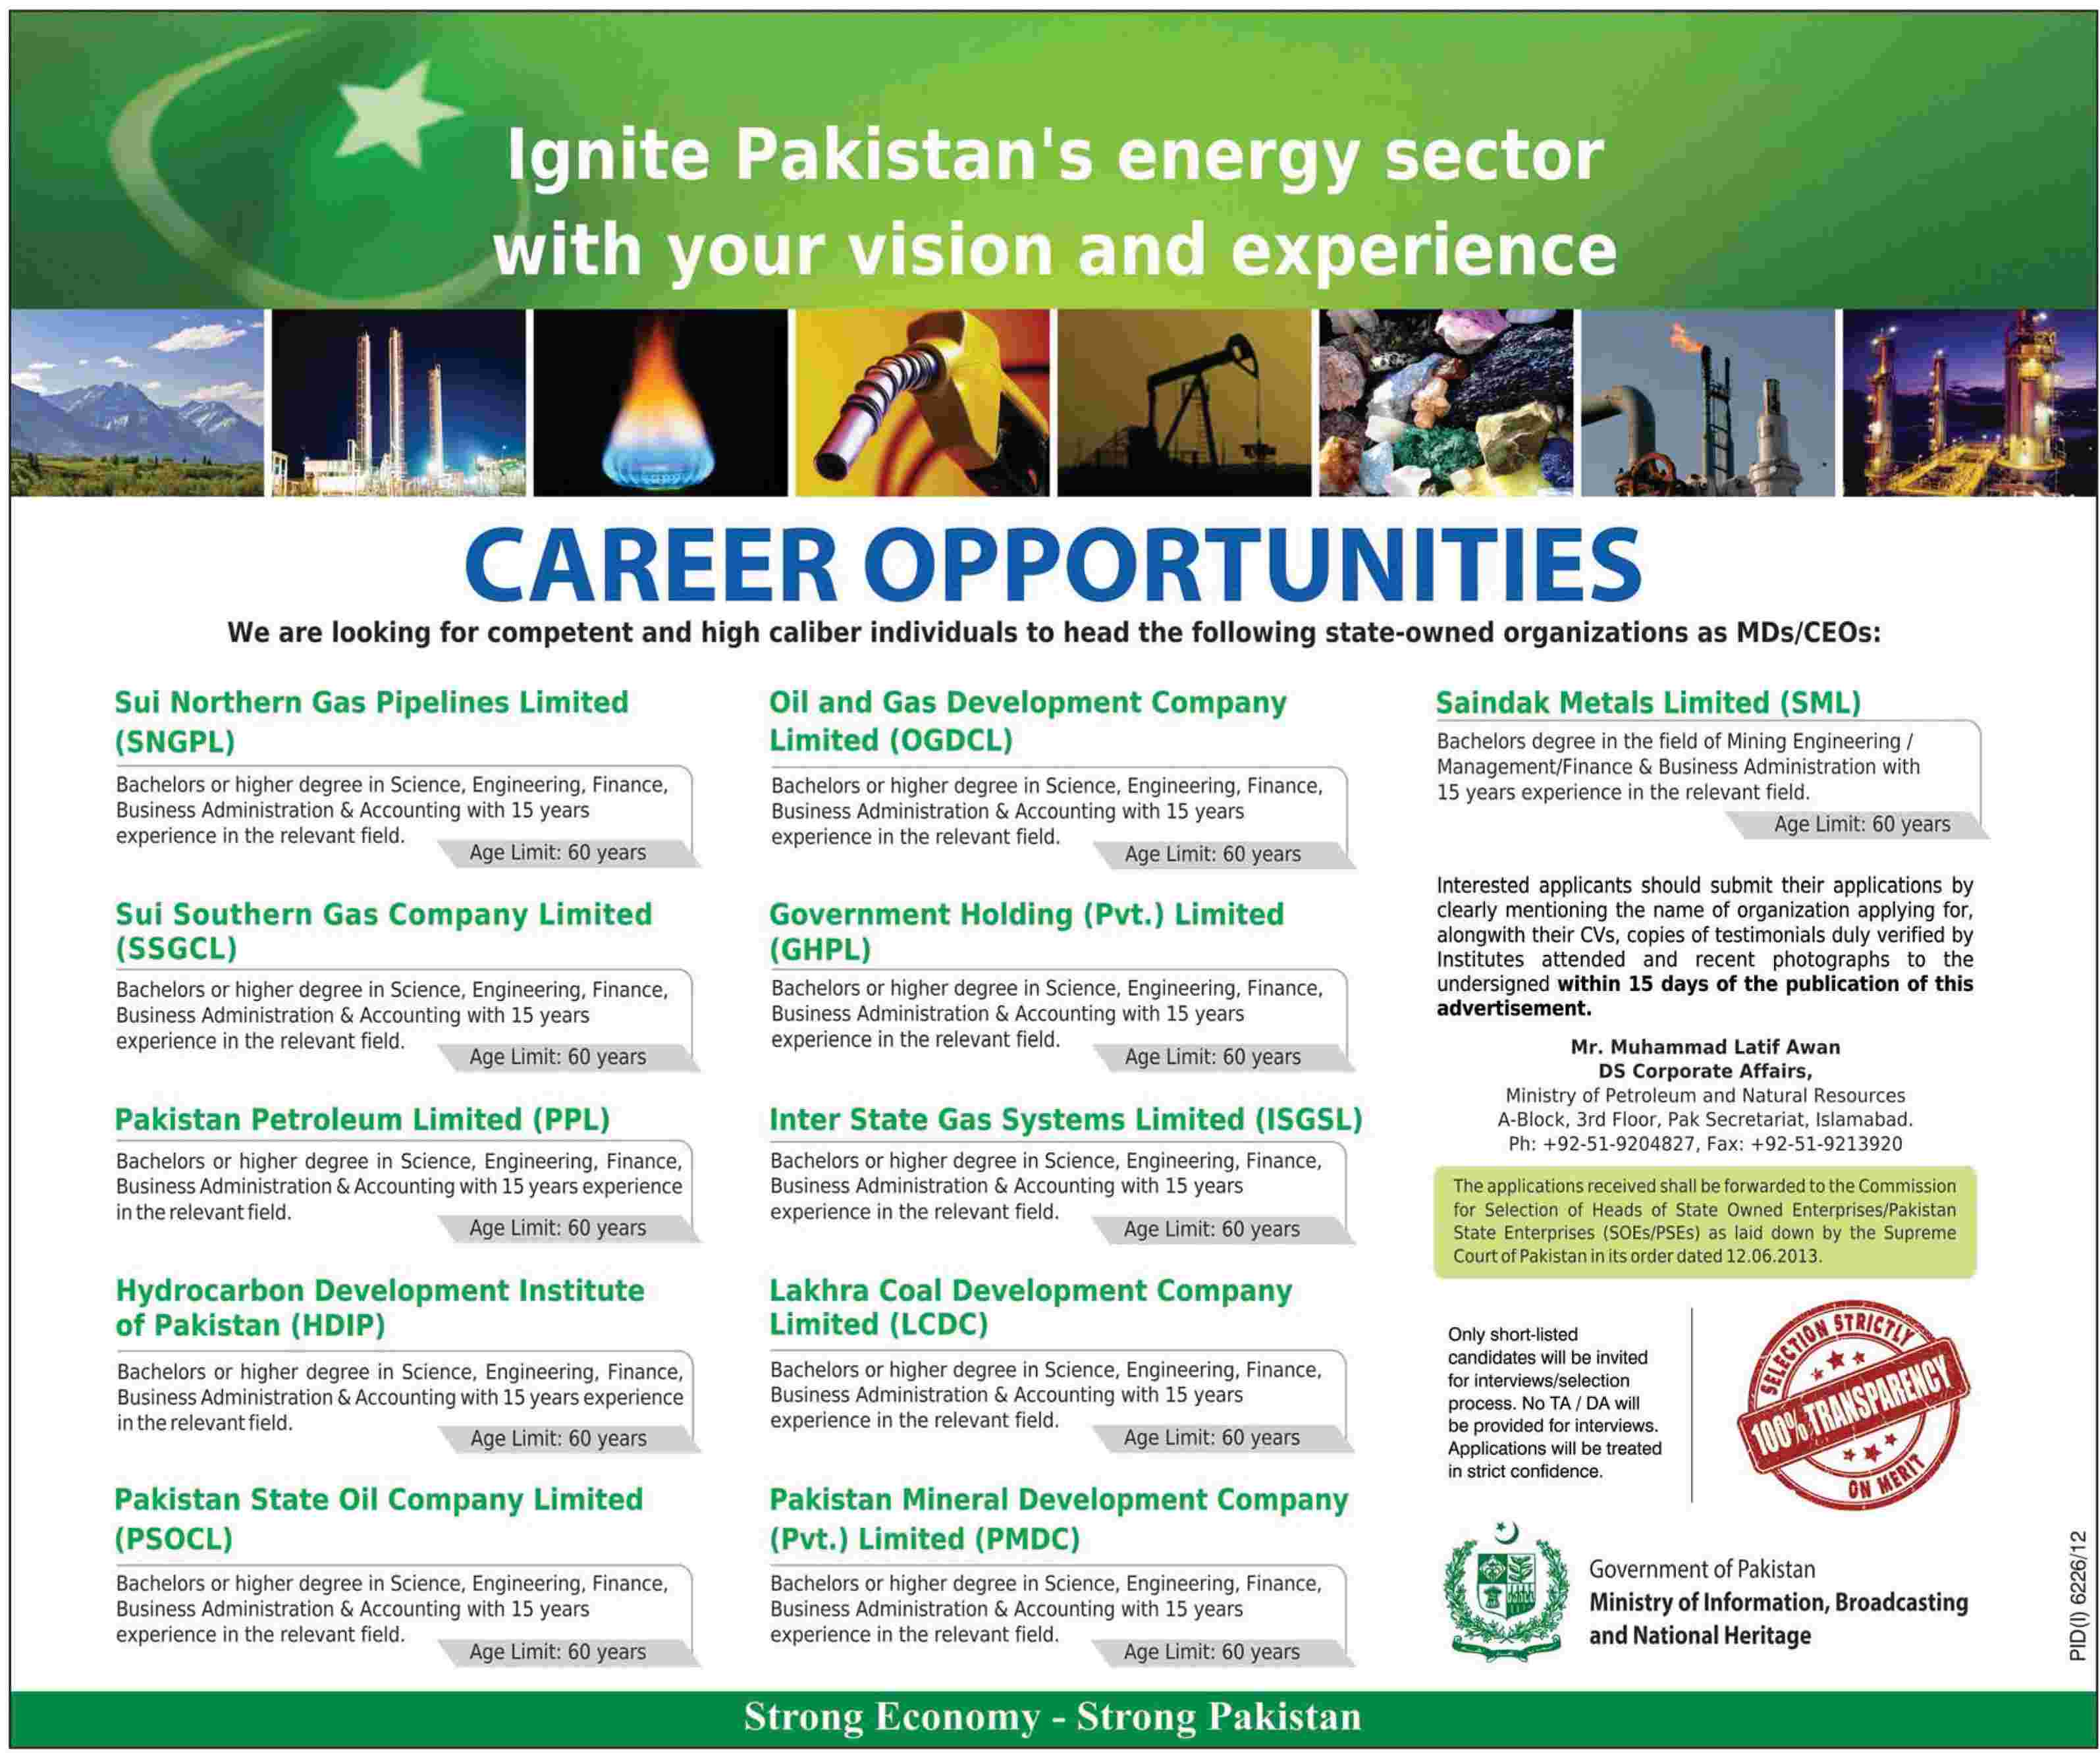 Administration Jobs, Express, Government Jobs, Islamabad., Jang, Jobs in Dawn, Jobs in OGDCL, Jobs in Pakistan, Jobs in PMDC, Jobs in PSO, Jobs in SNGPL, Management Jobs, Mashriq, Nawaiqat Newspaper, PPL Jobs, SSGC Jobs, Technical Jobs, Technical Jobs in Pakistan